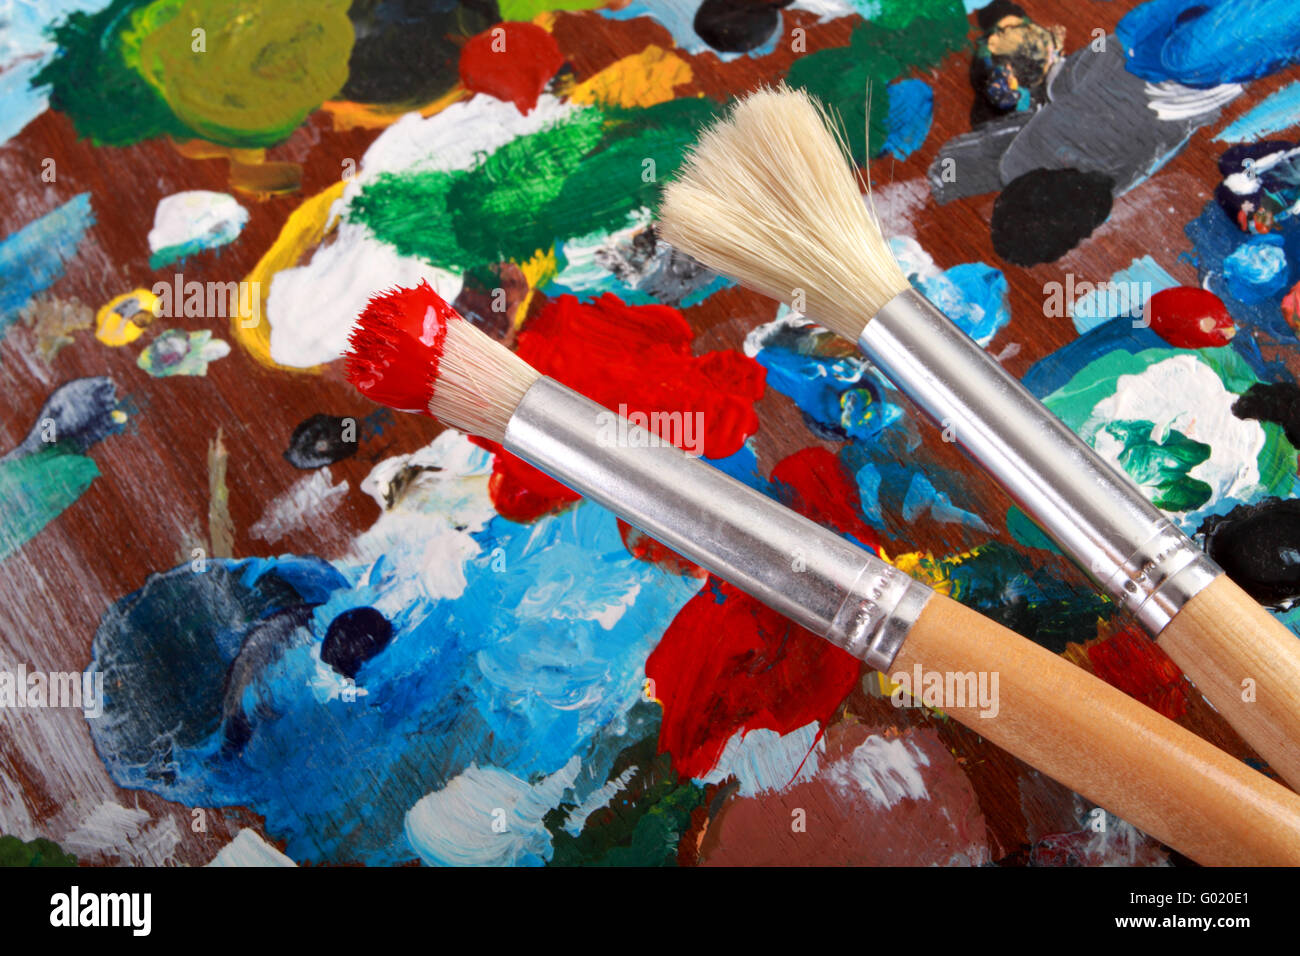 Classic artists palette with paintbrushes background. - Stock Image